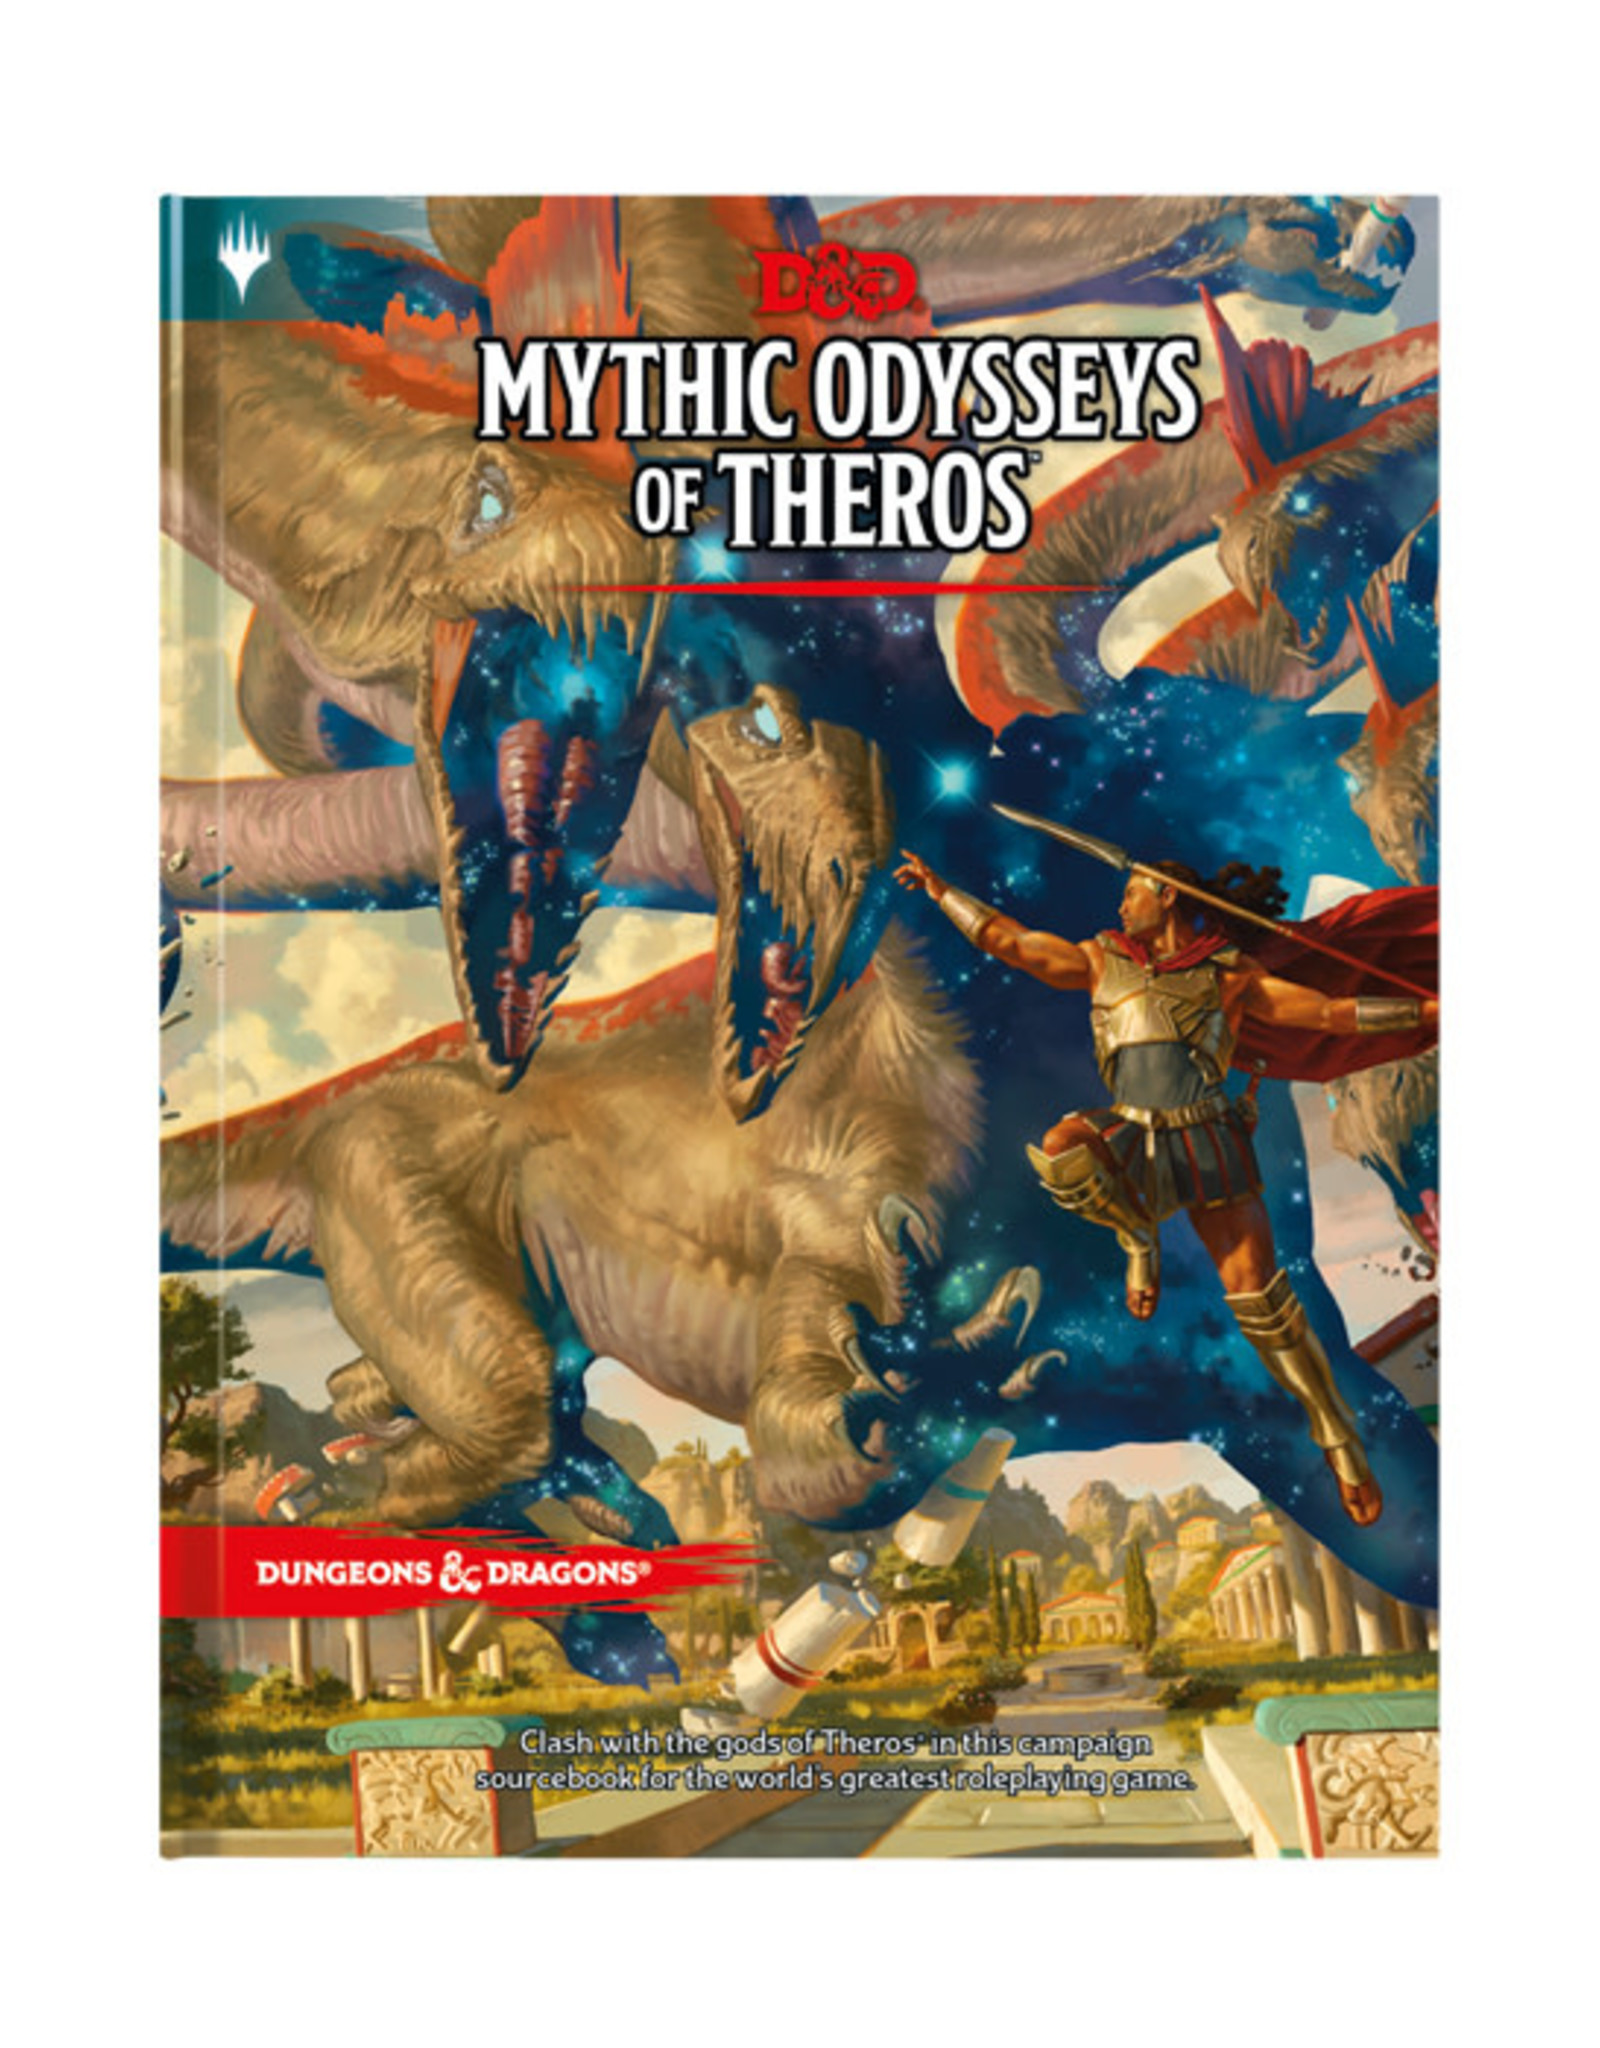 Dungeons & Dragons Dungeons & Dragons: 5th Edition - Mythic Odysseys of Theros